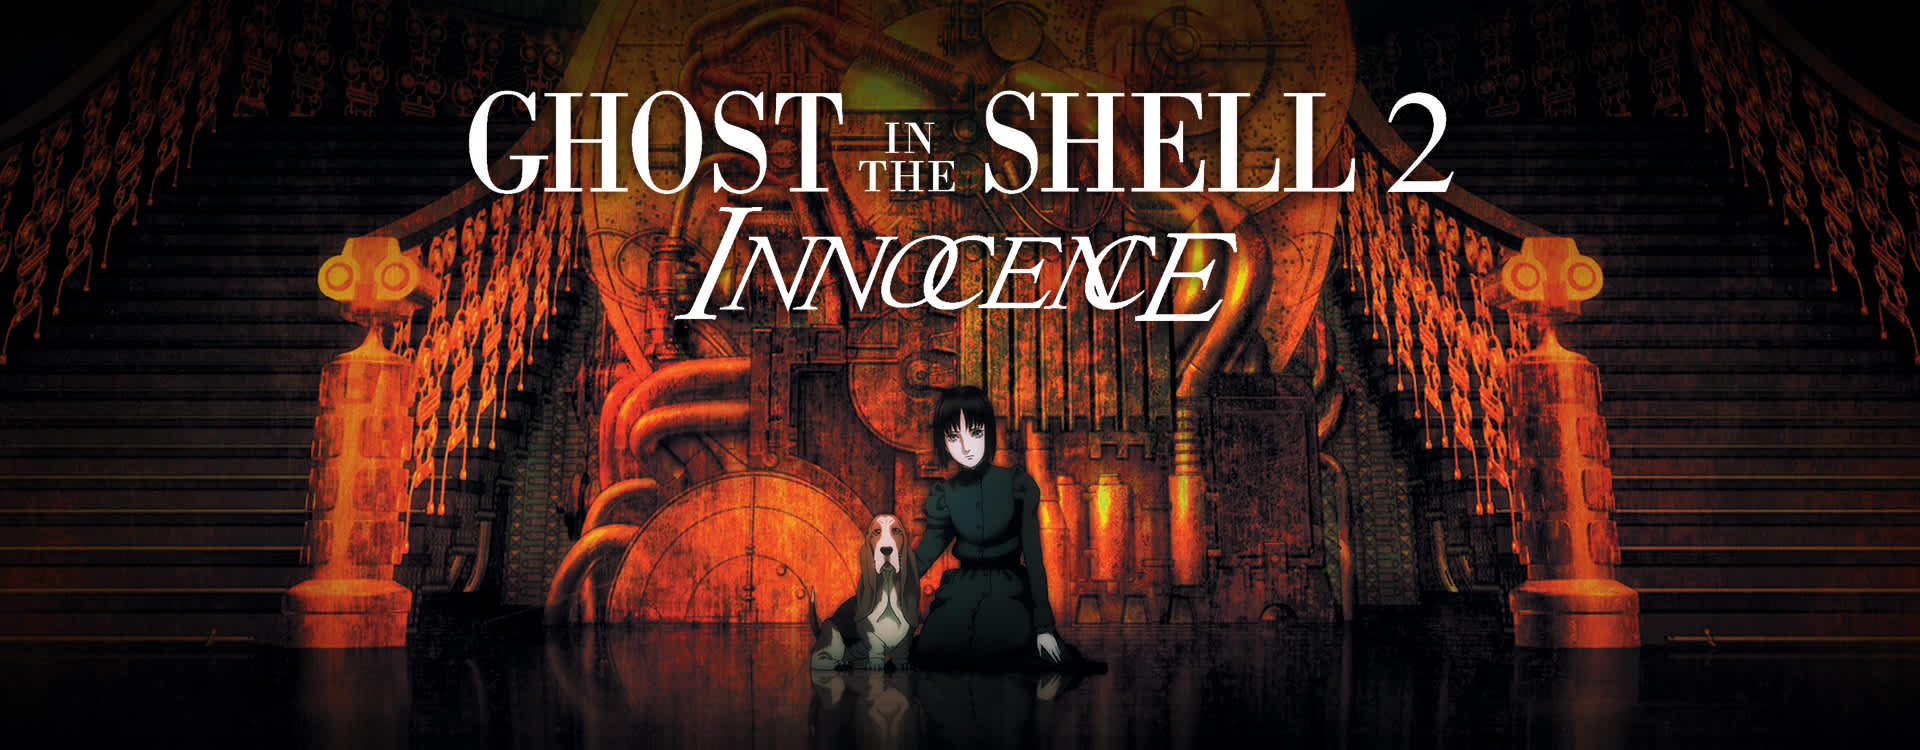 Watch Ghost In The Shell 2: Innocence Movie Sub & Dub | Action ...